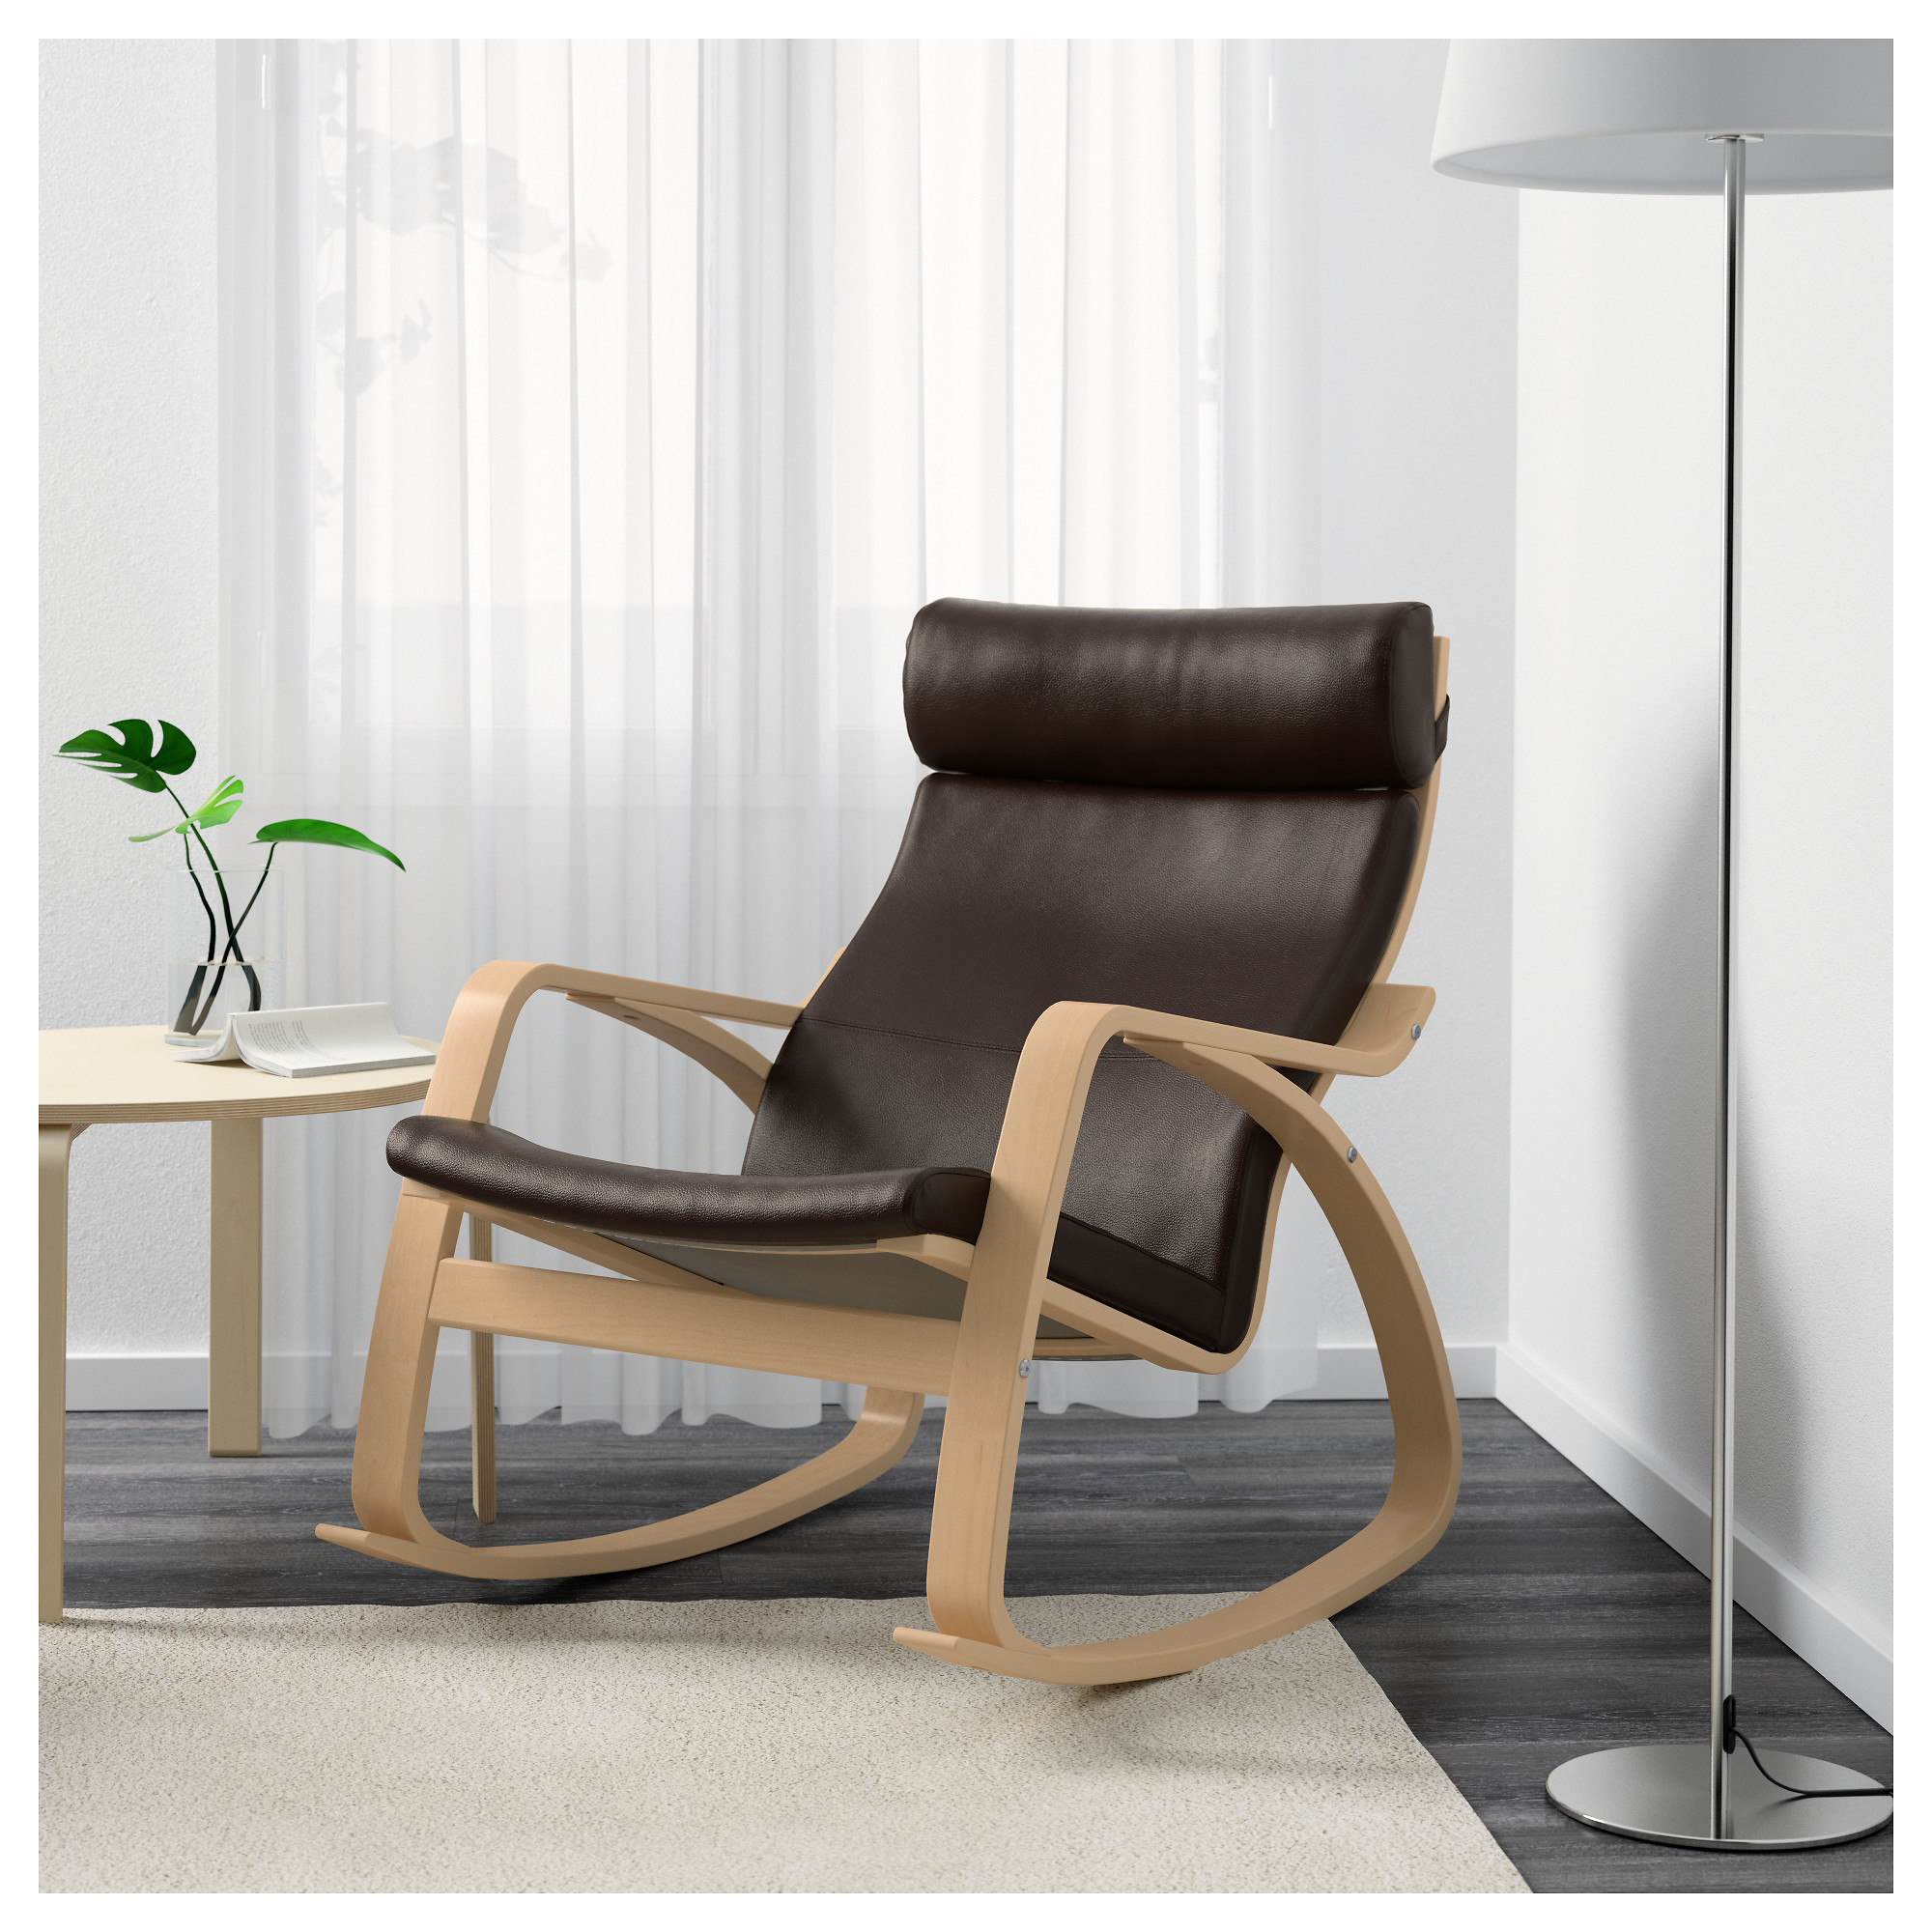 Ikea lillberg rocking chair - Ikea Lillberg Rocking Chair 1